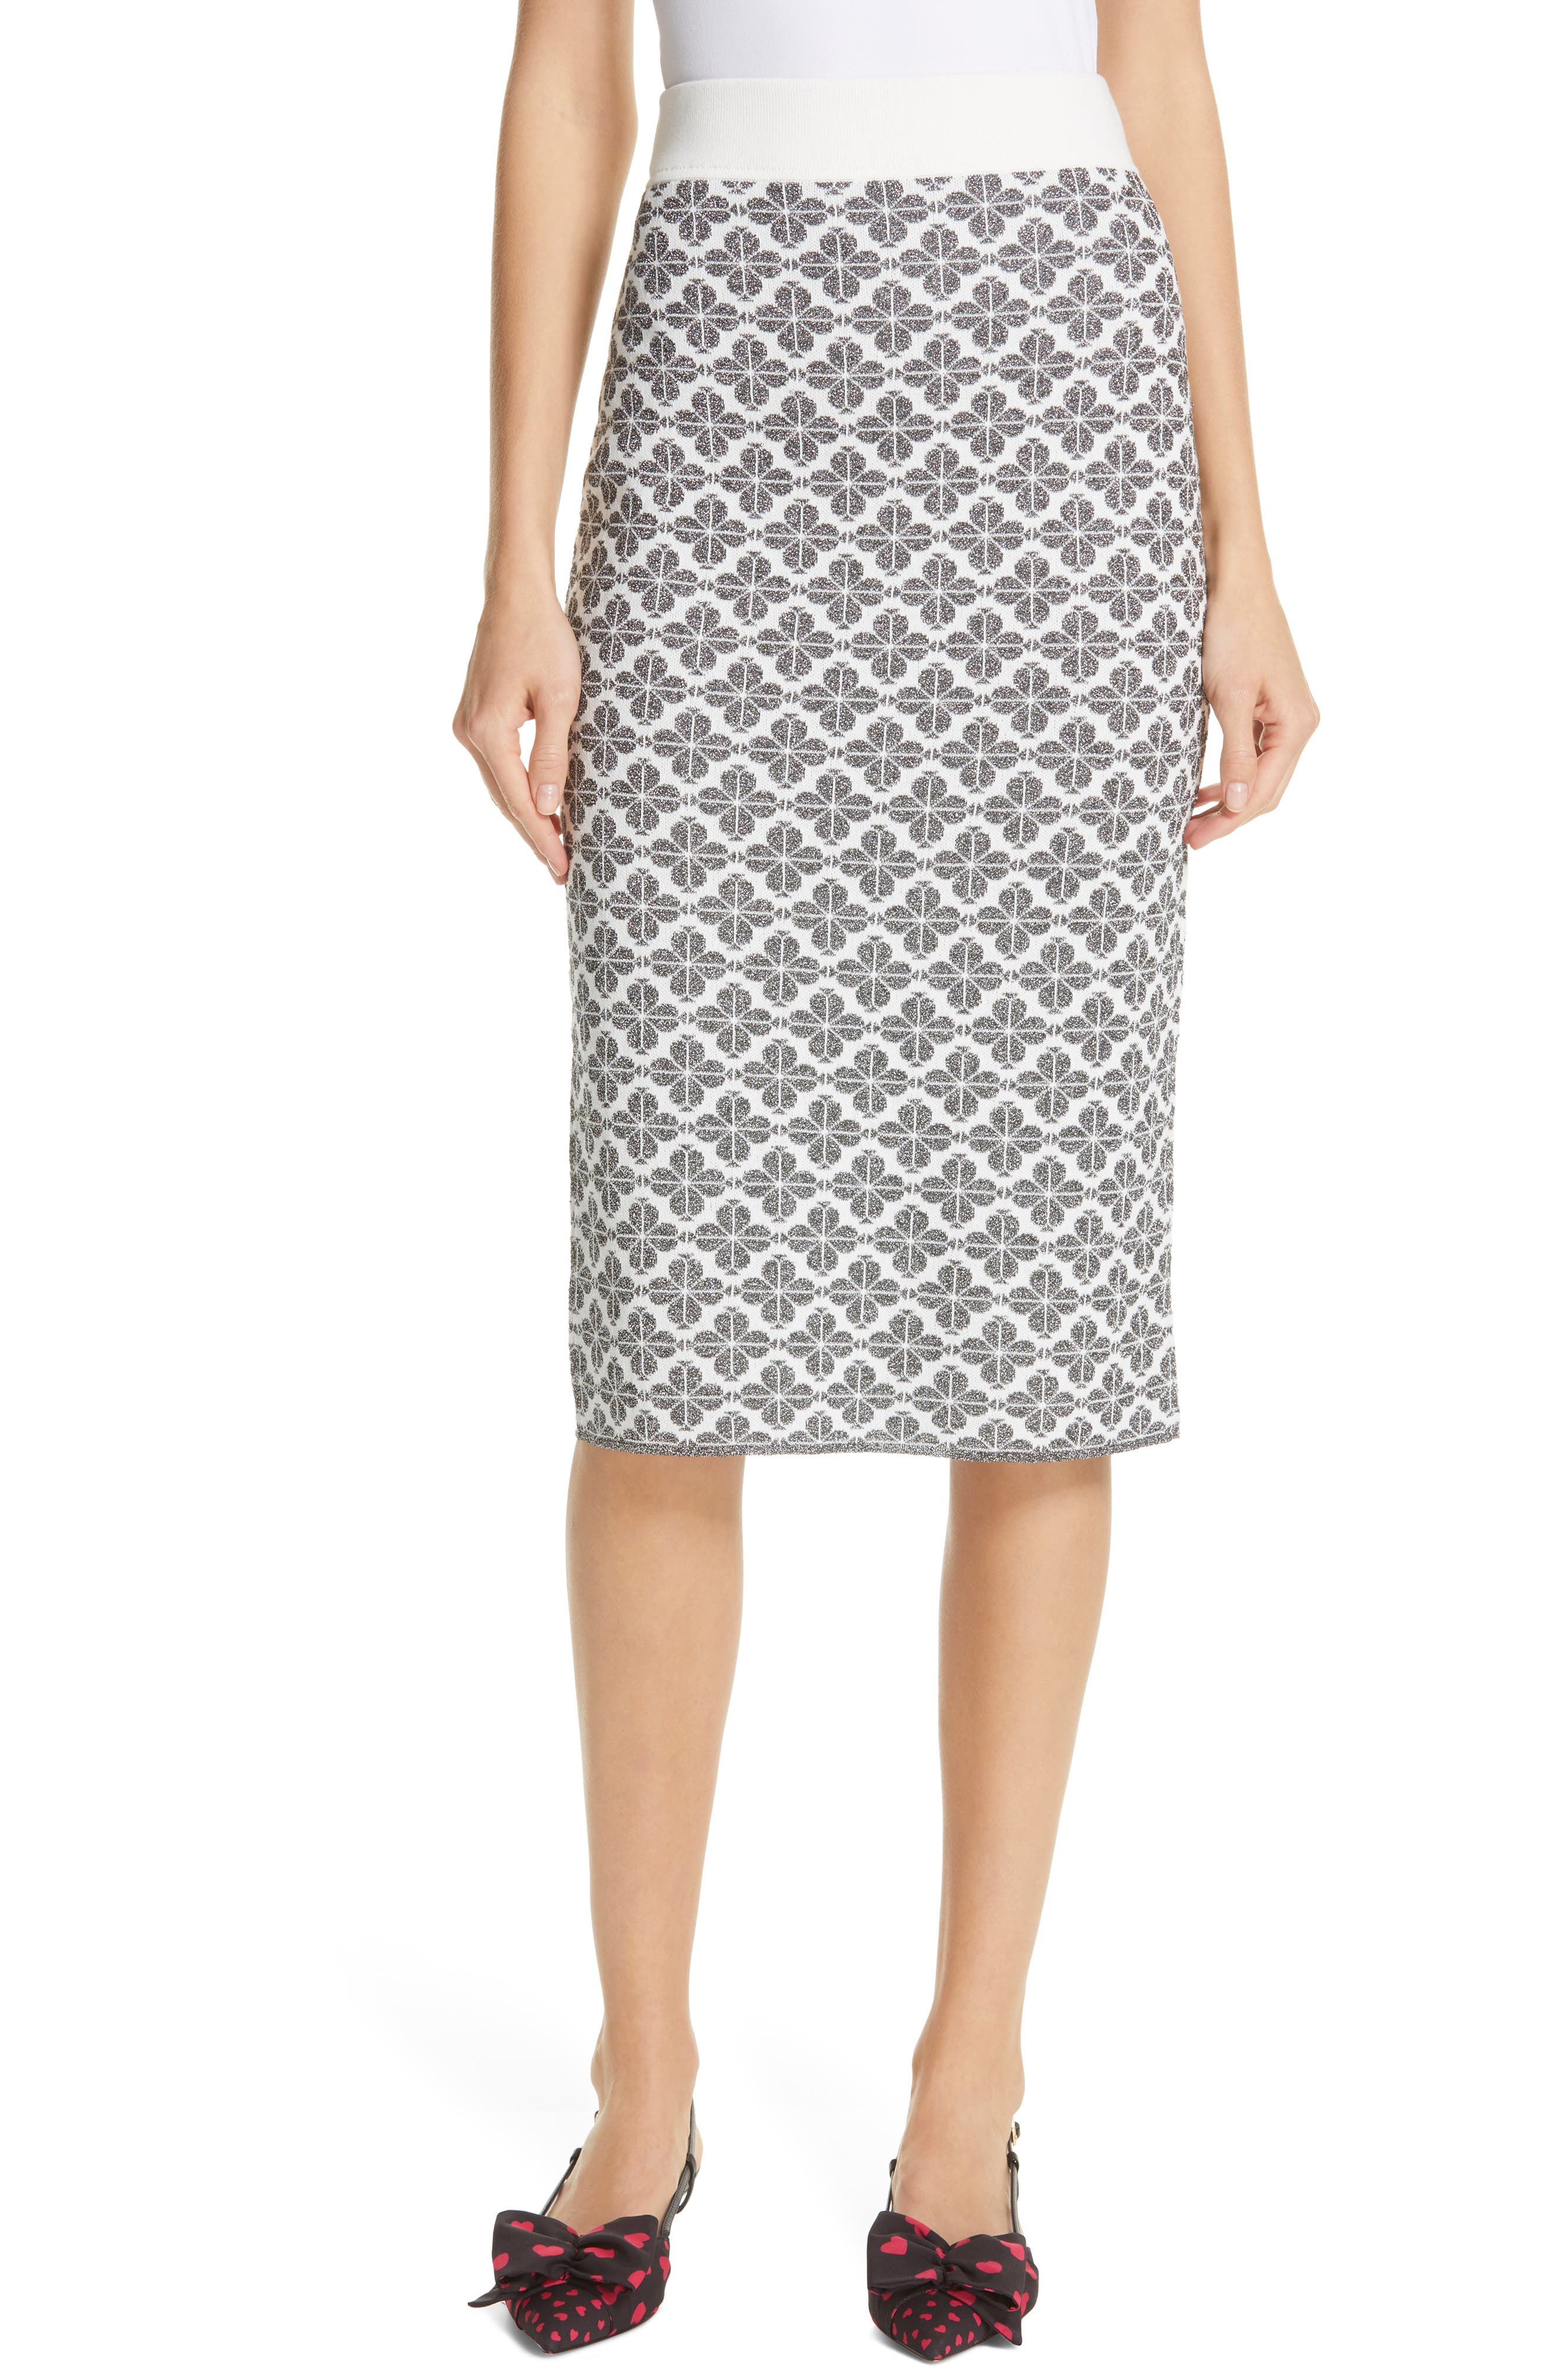 KATE SPADE NEW YORK,                             floral spade knit pencil skirt,                             Main thumbnail 1, color,                             BLACK